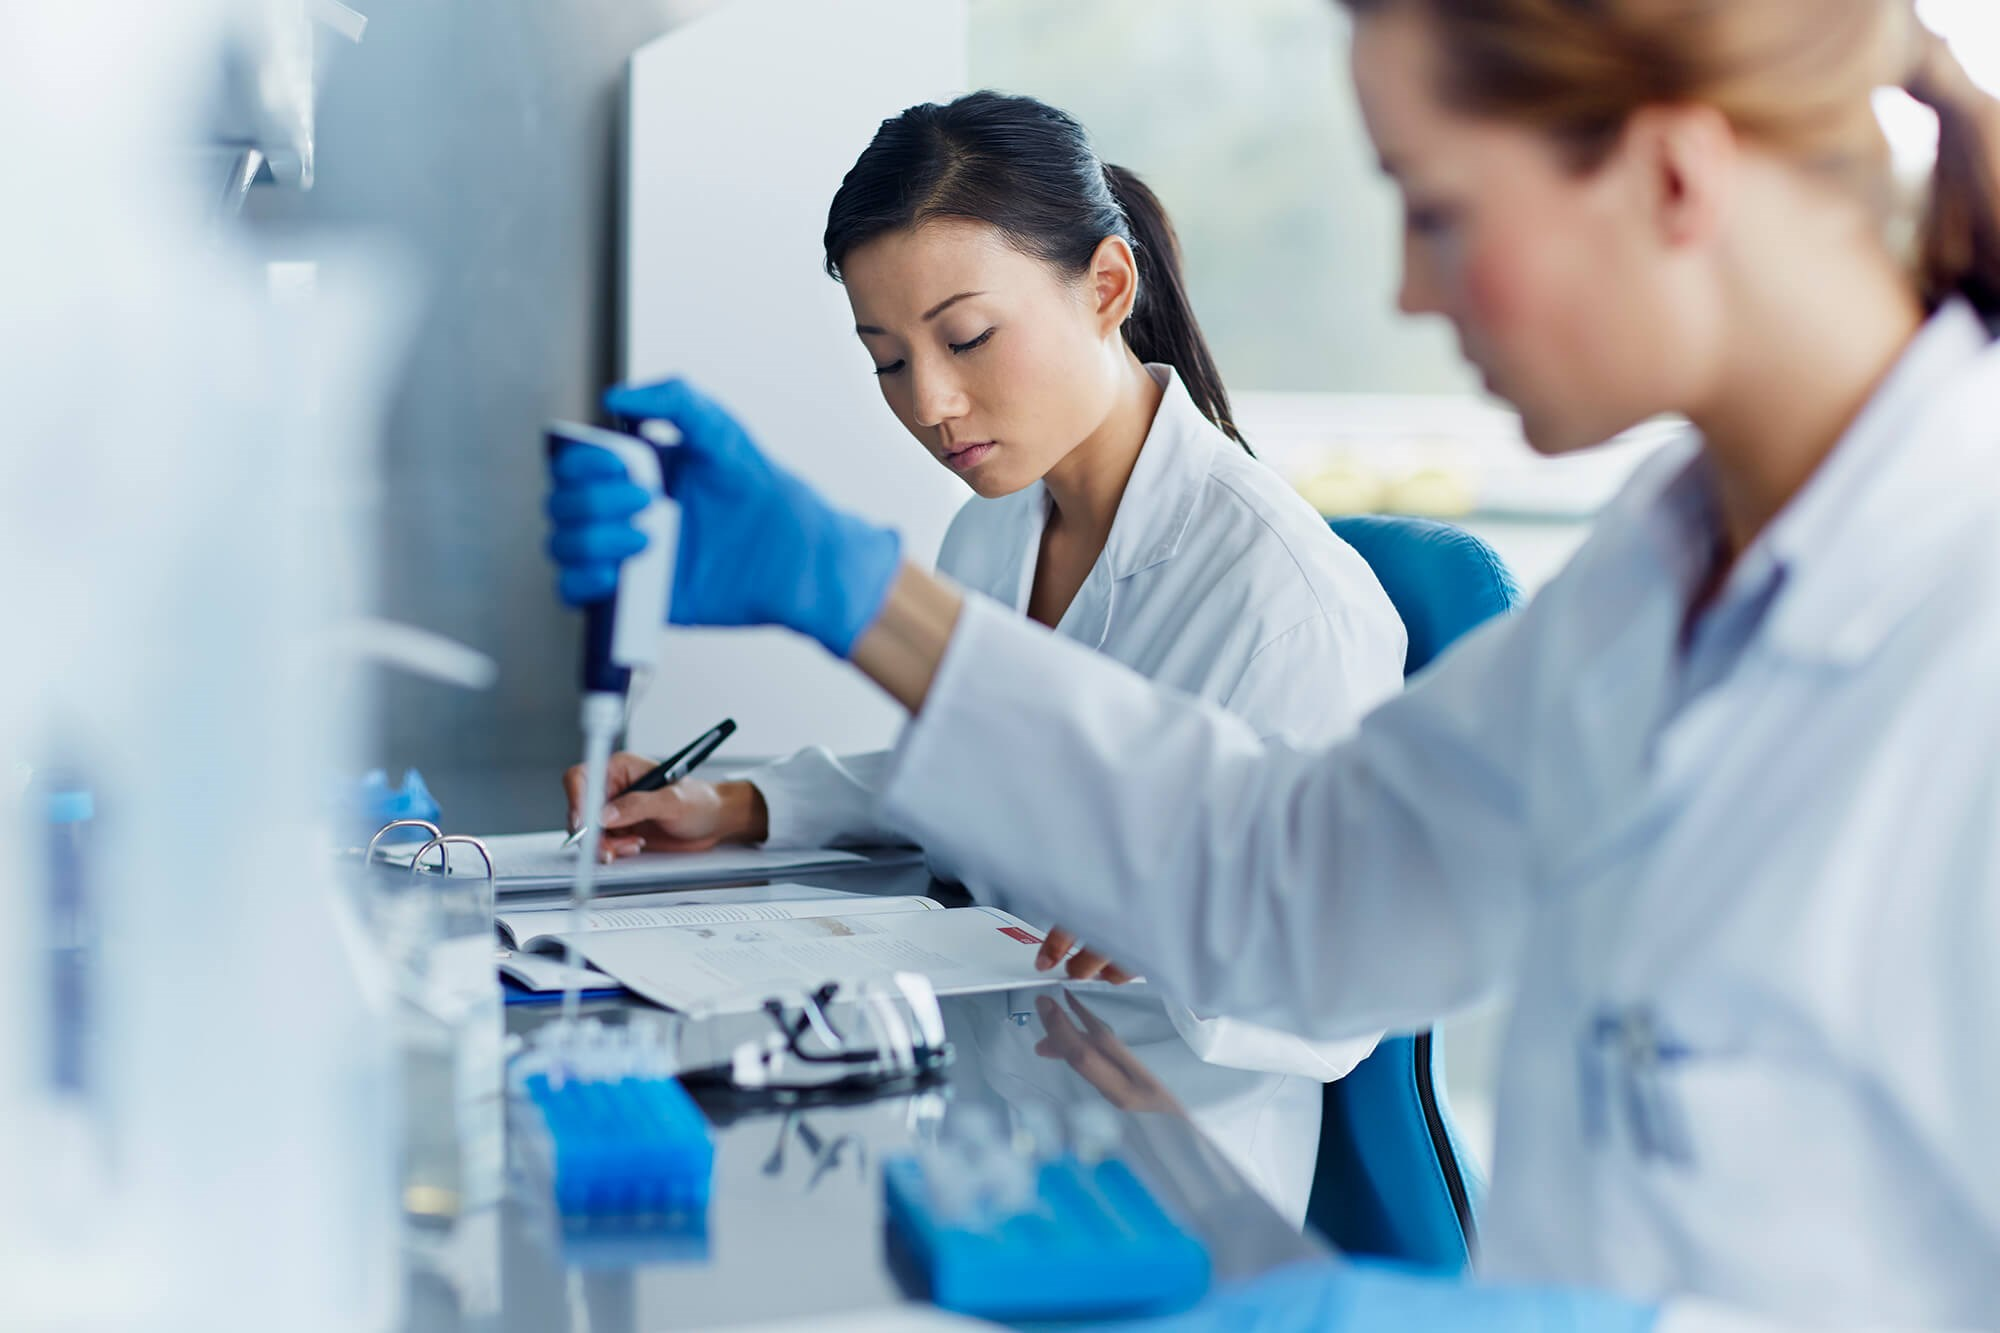 Researchers Report Early Clinical Promise for Macrophage Checkpoint Blockade